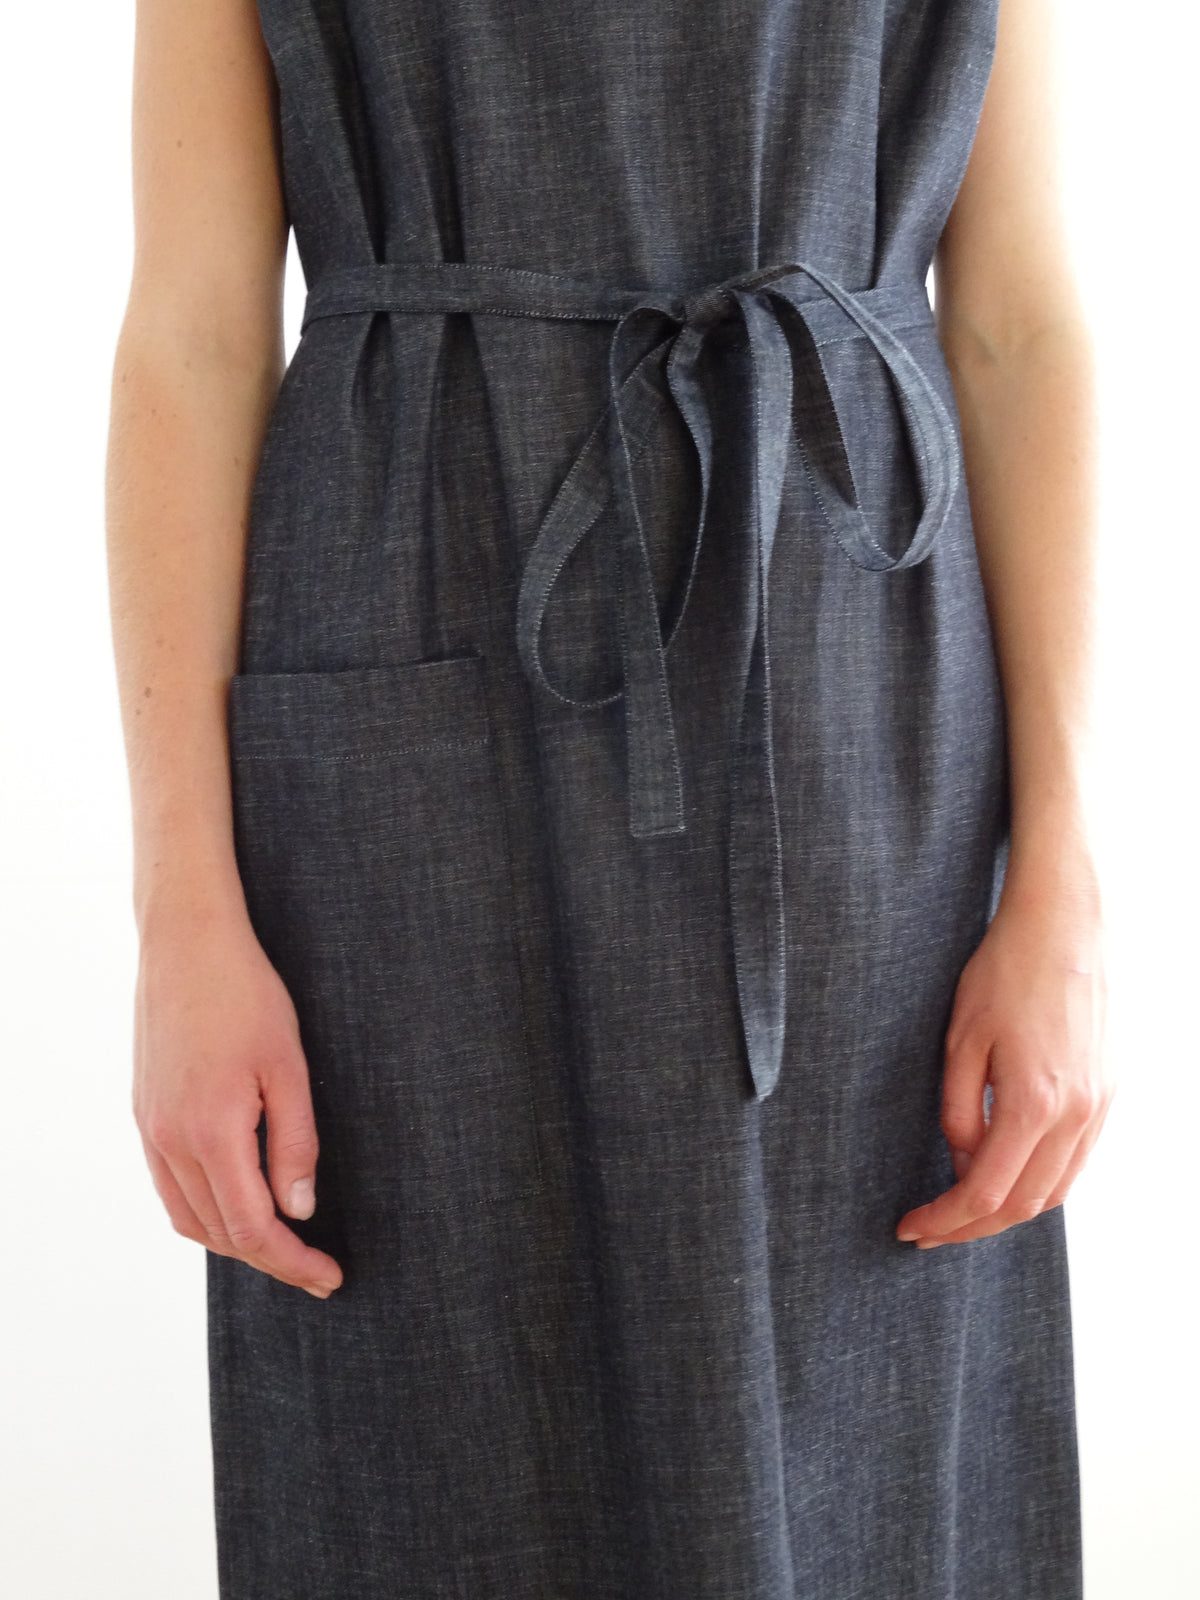 Pajotten simple sustainably made denim shift dress with tie